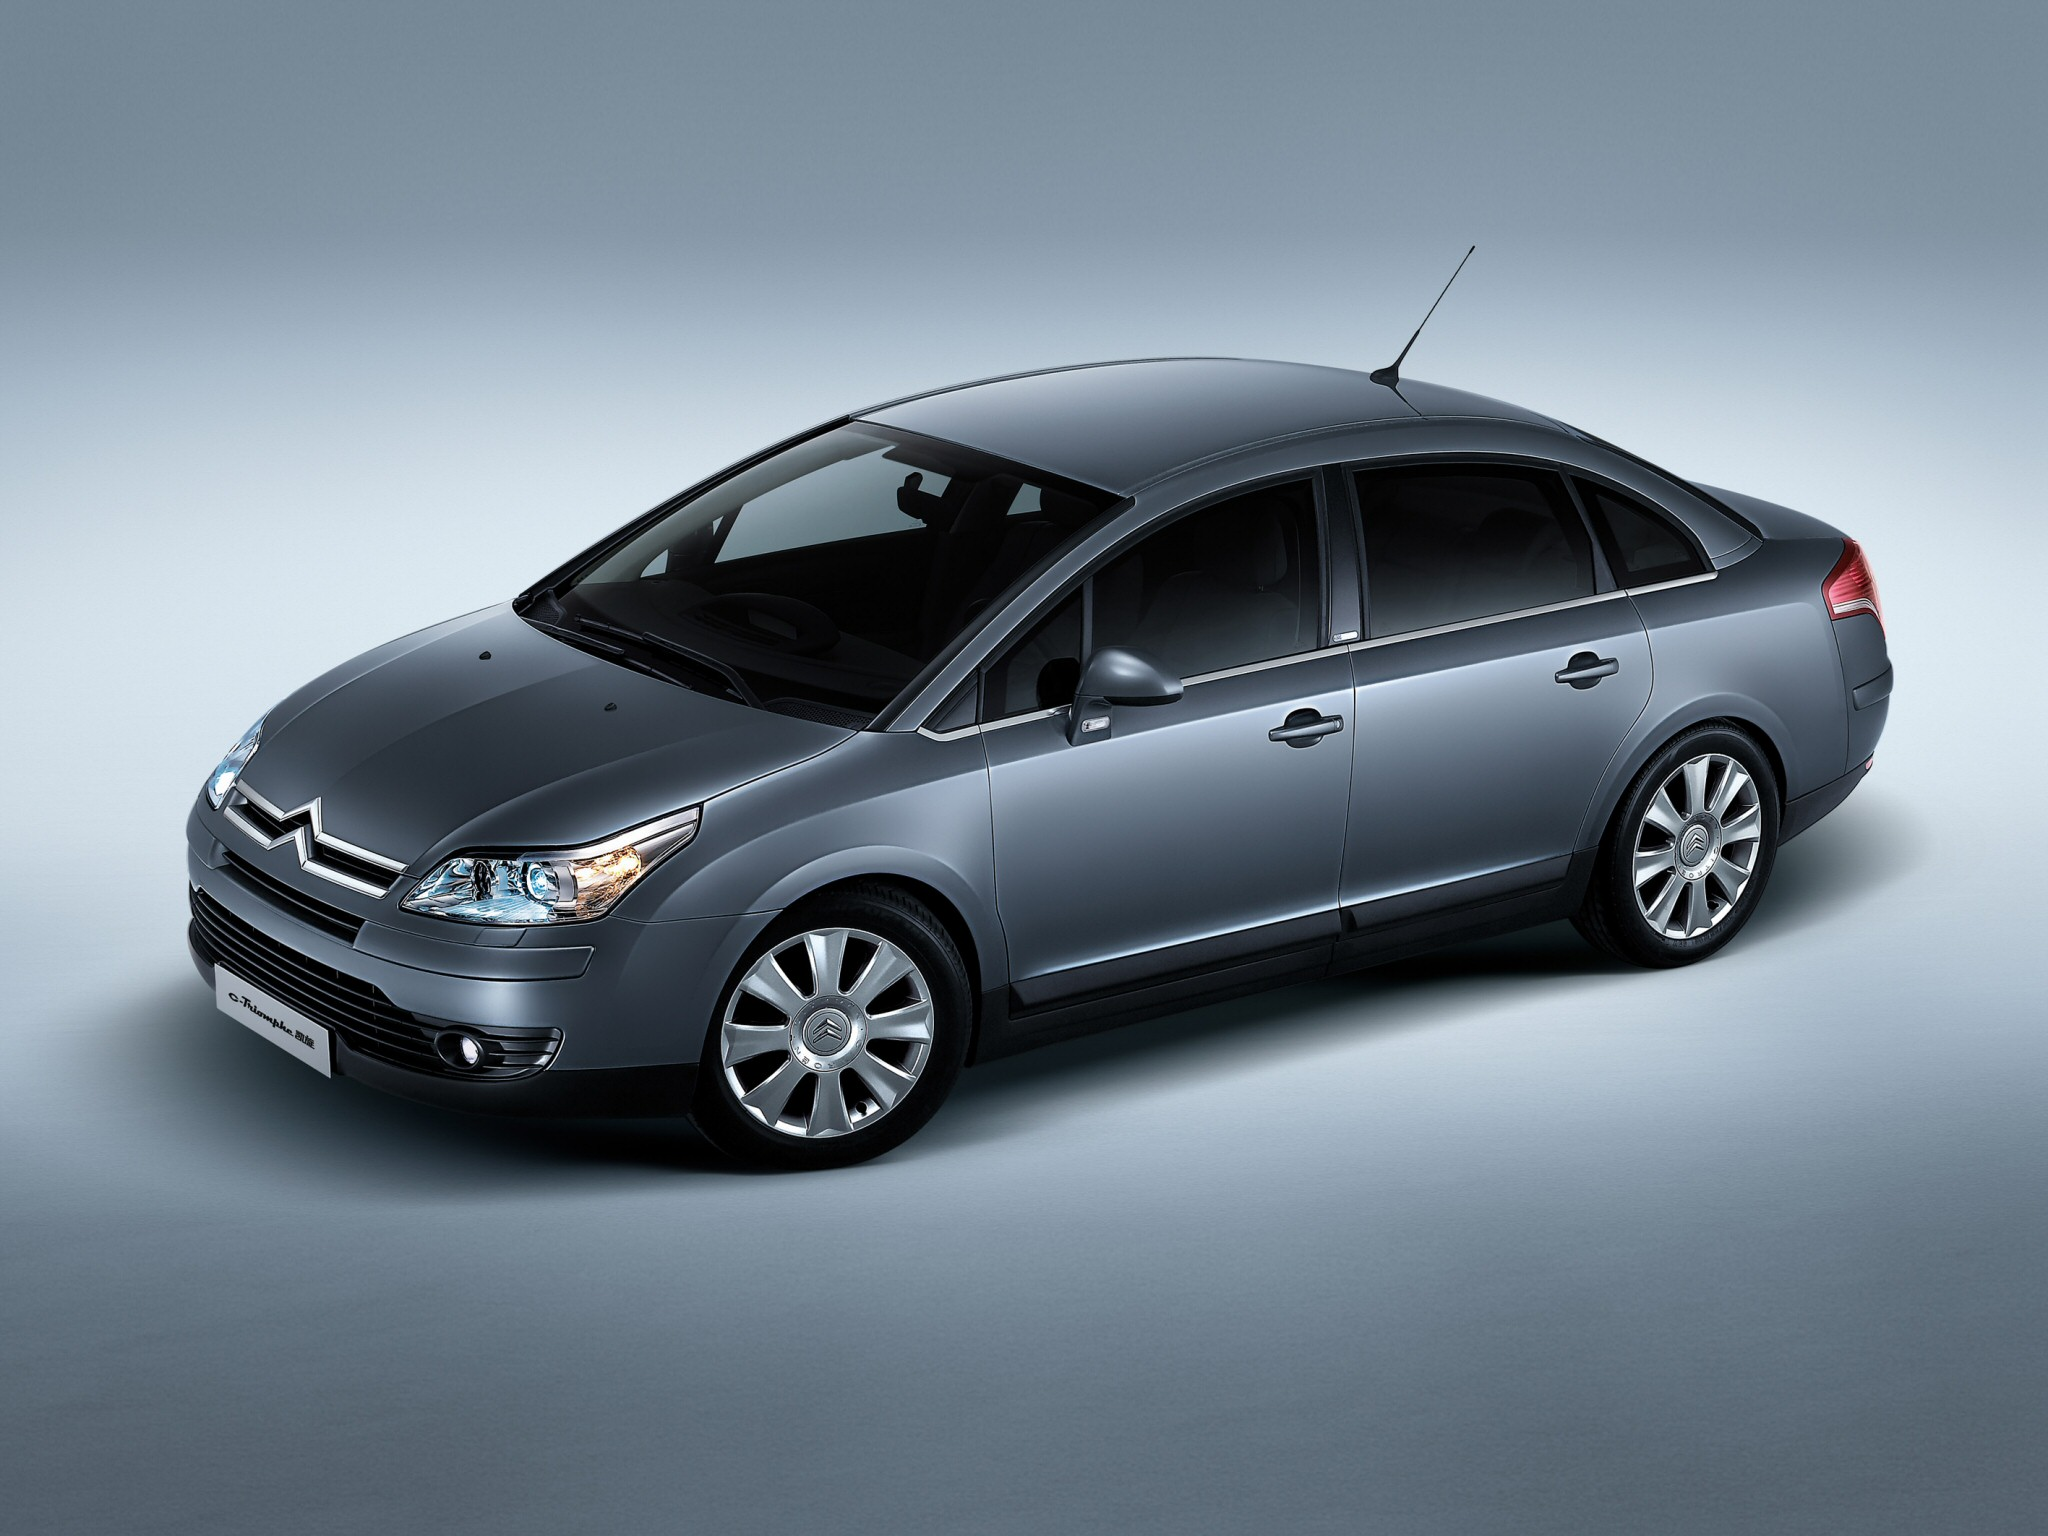 Citroen C4 Pallas Antes Mi Experiencia Wallpapers For Background